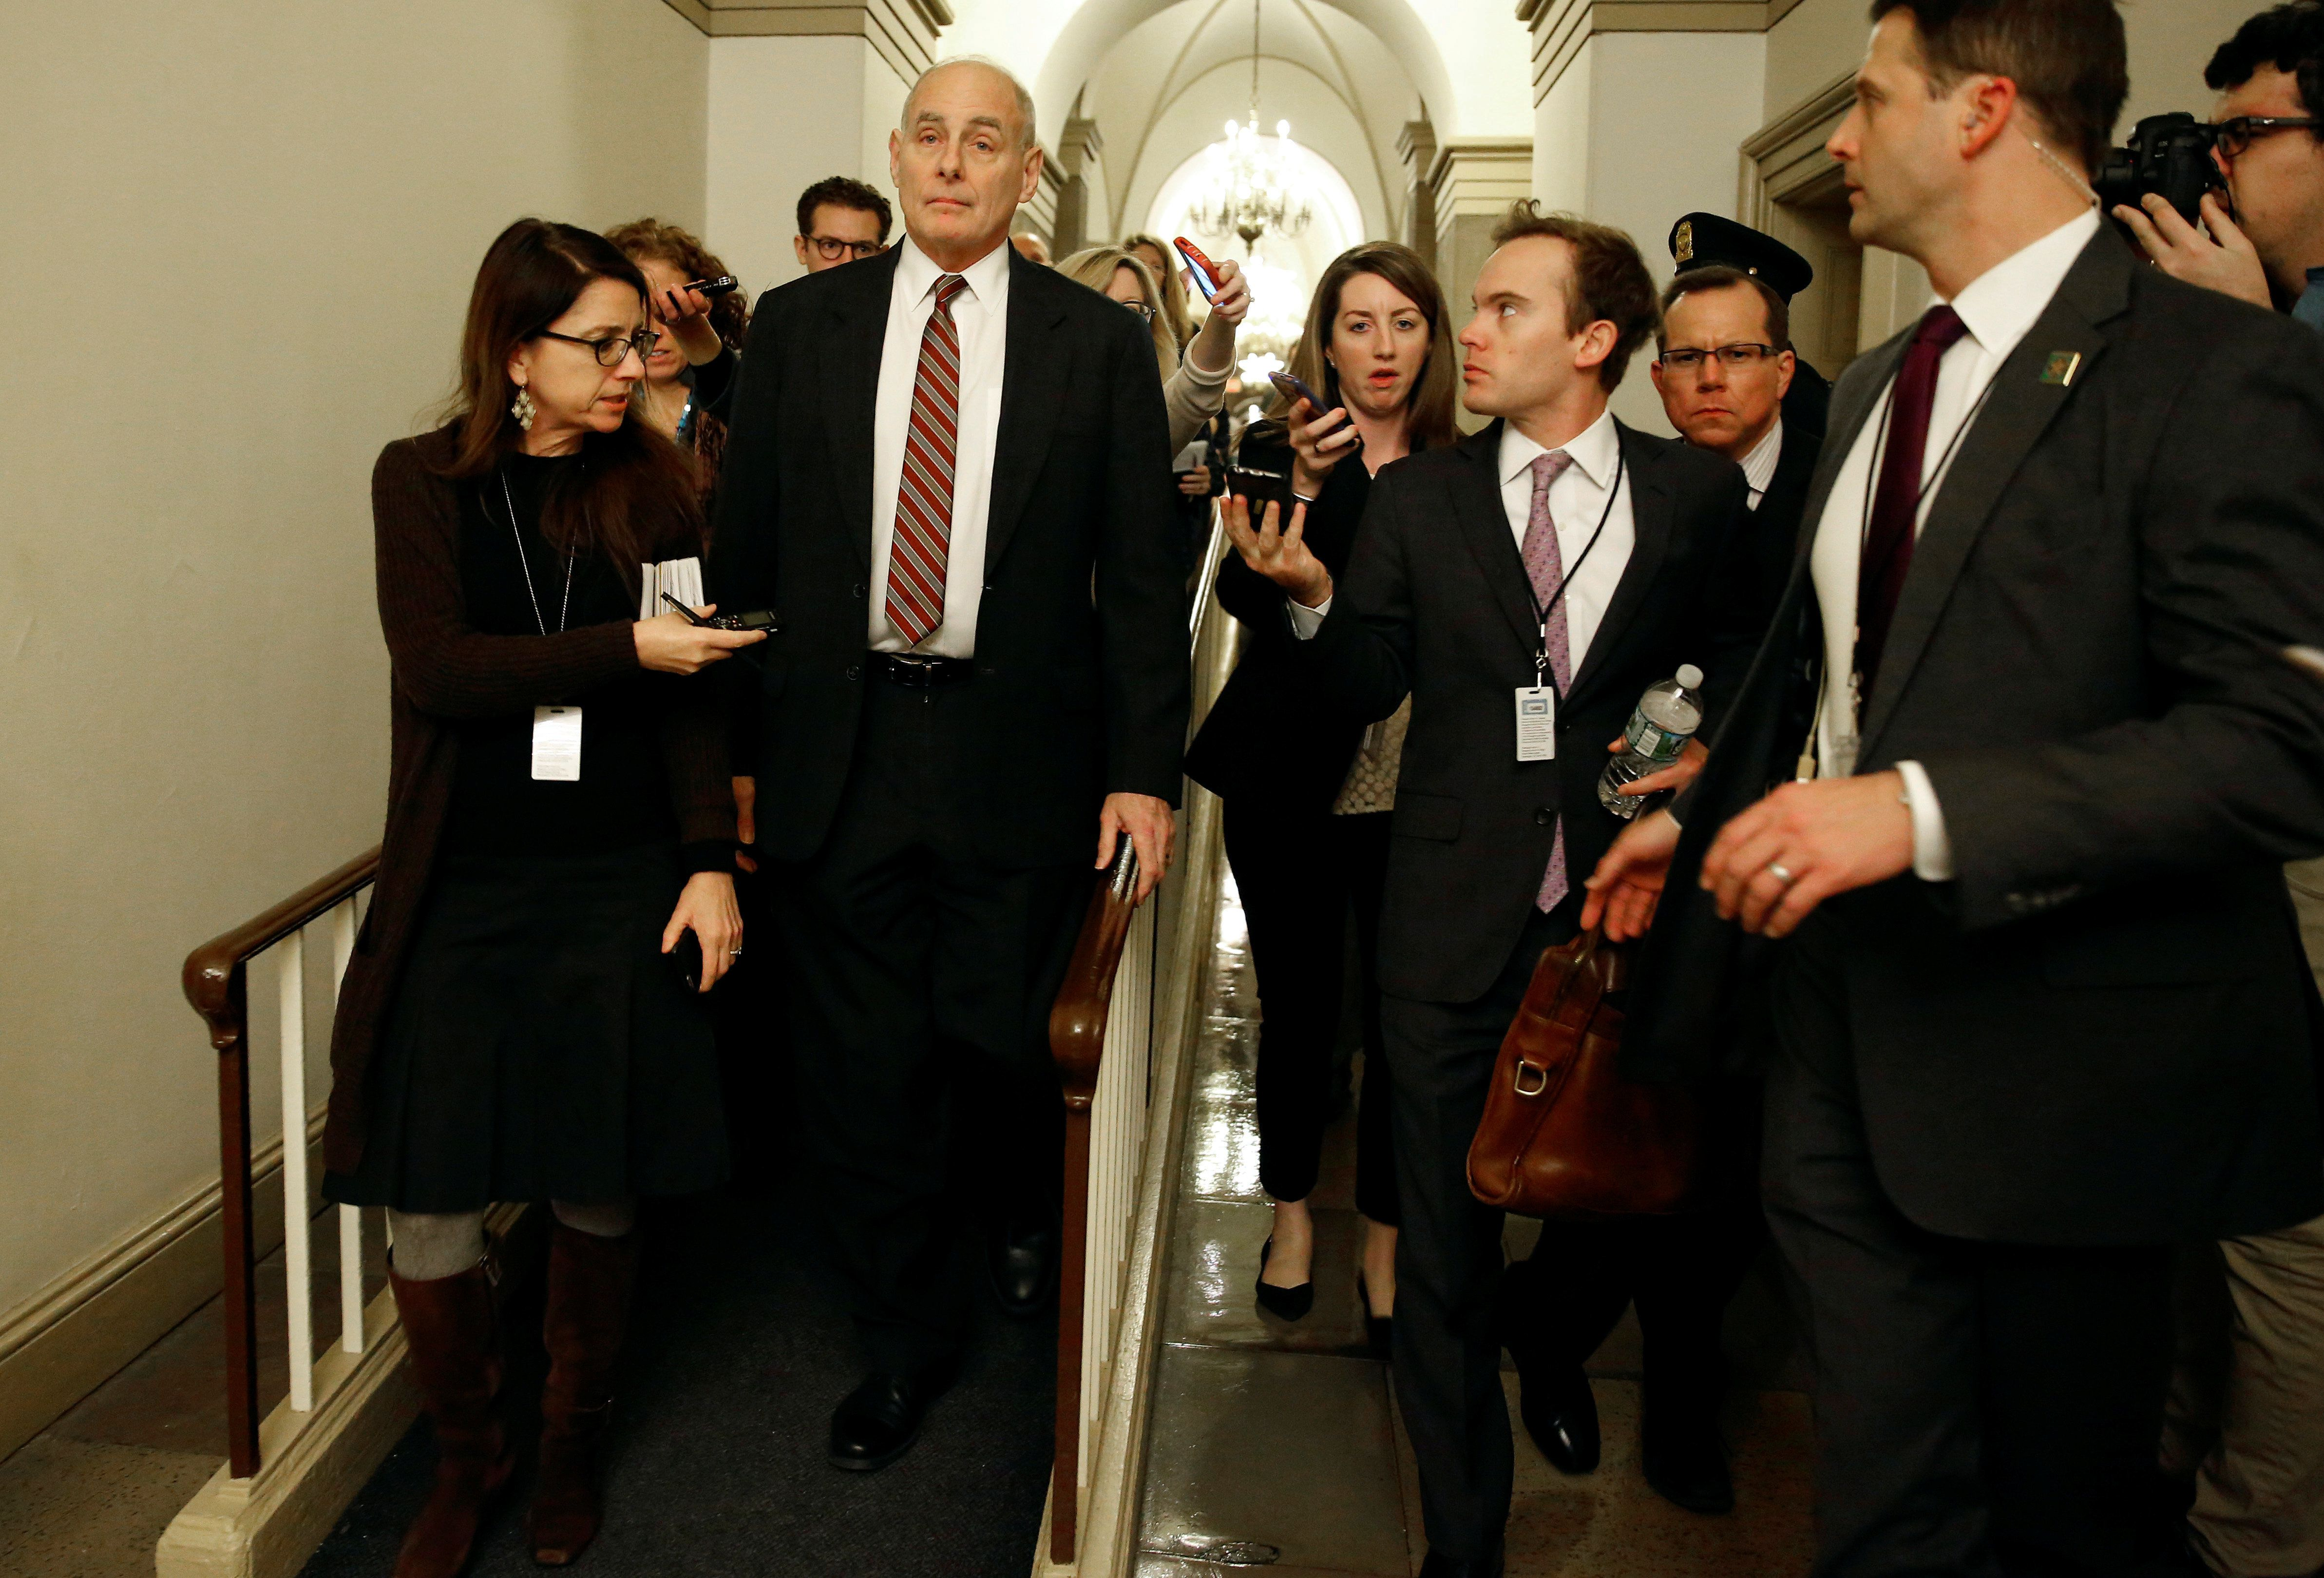 White House Chief of Staff John Kelly arrives for a meeting with House Majority Leader Kevin McCarthy (R-CA) on Capitol Hill in Washington, U.S., January 17, 2018.      REUTERS/Joshua Roberts